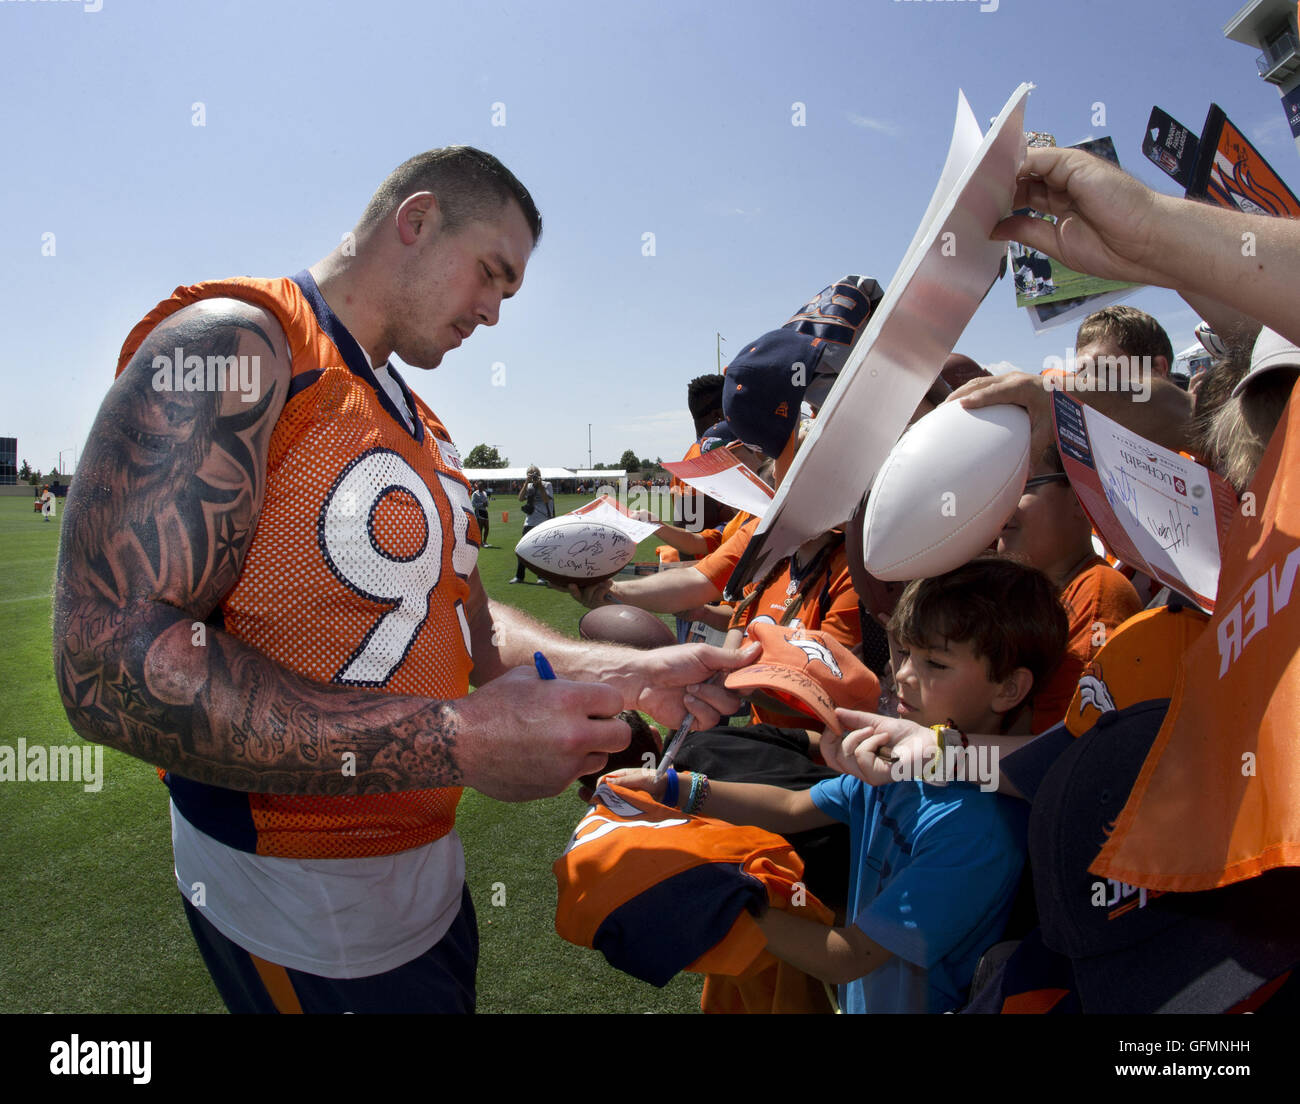 Englewood Colorado USA 31st July 2016 Denver Broncos DE DEREK